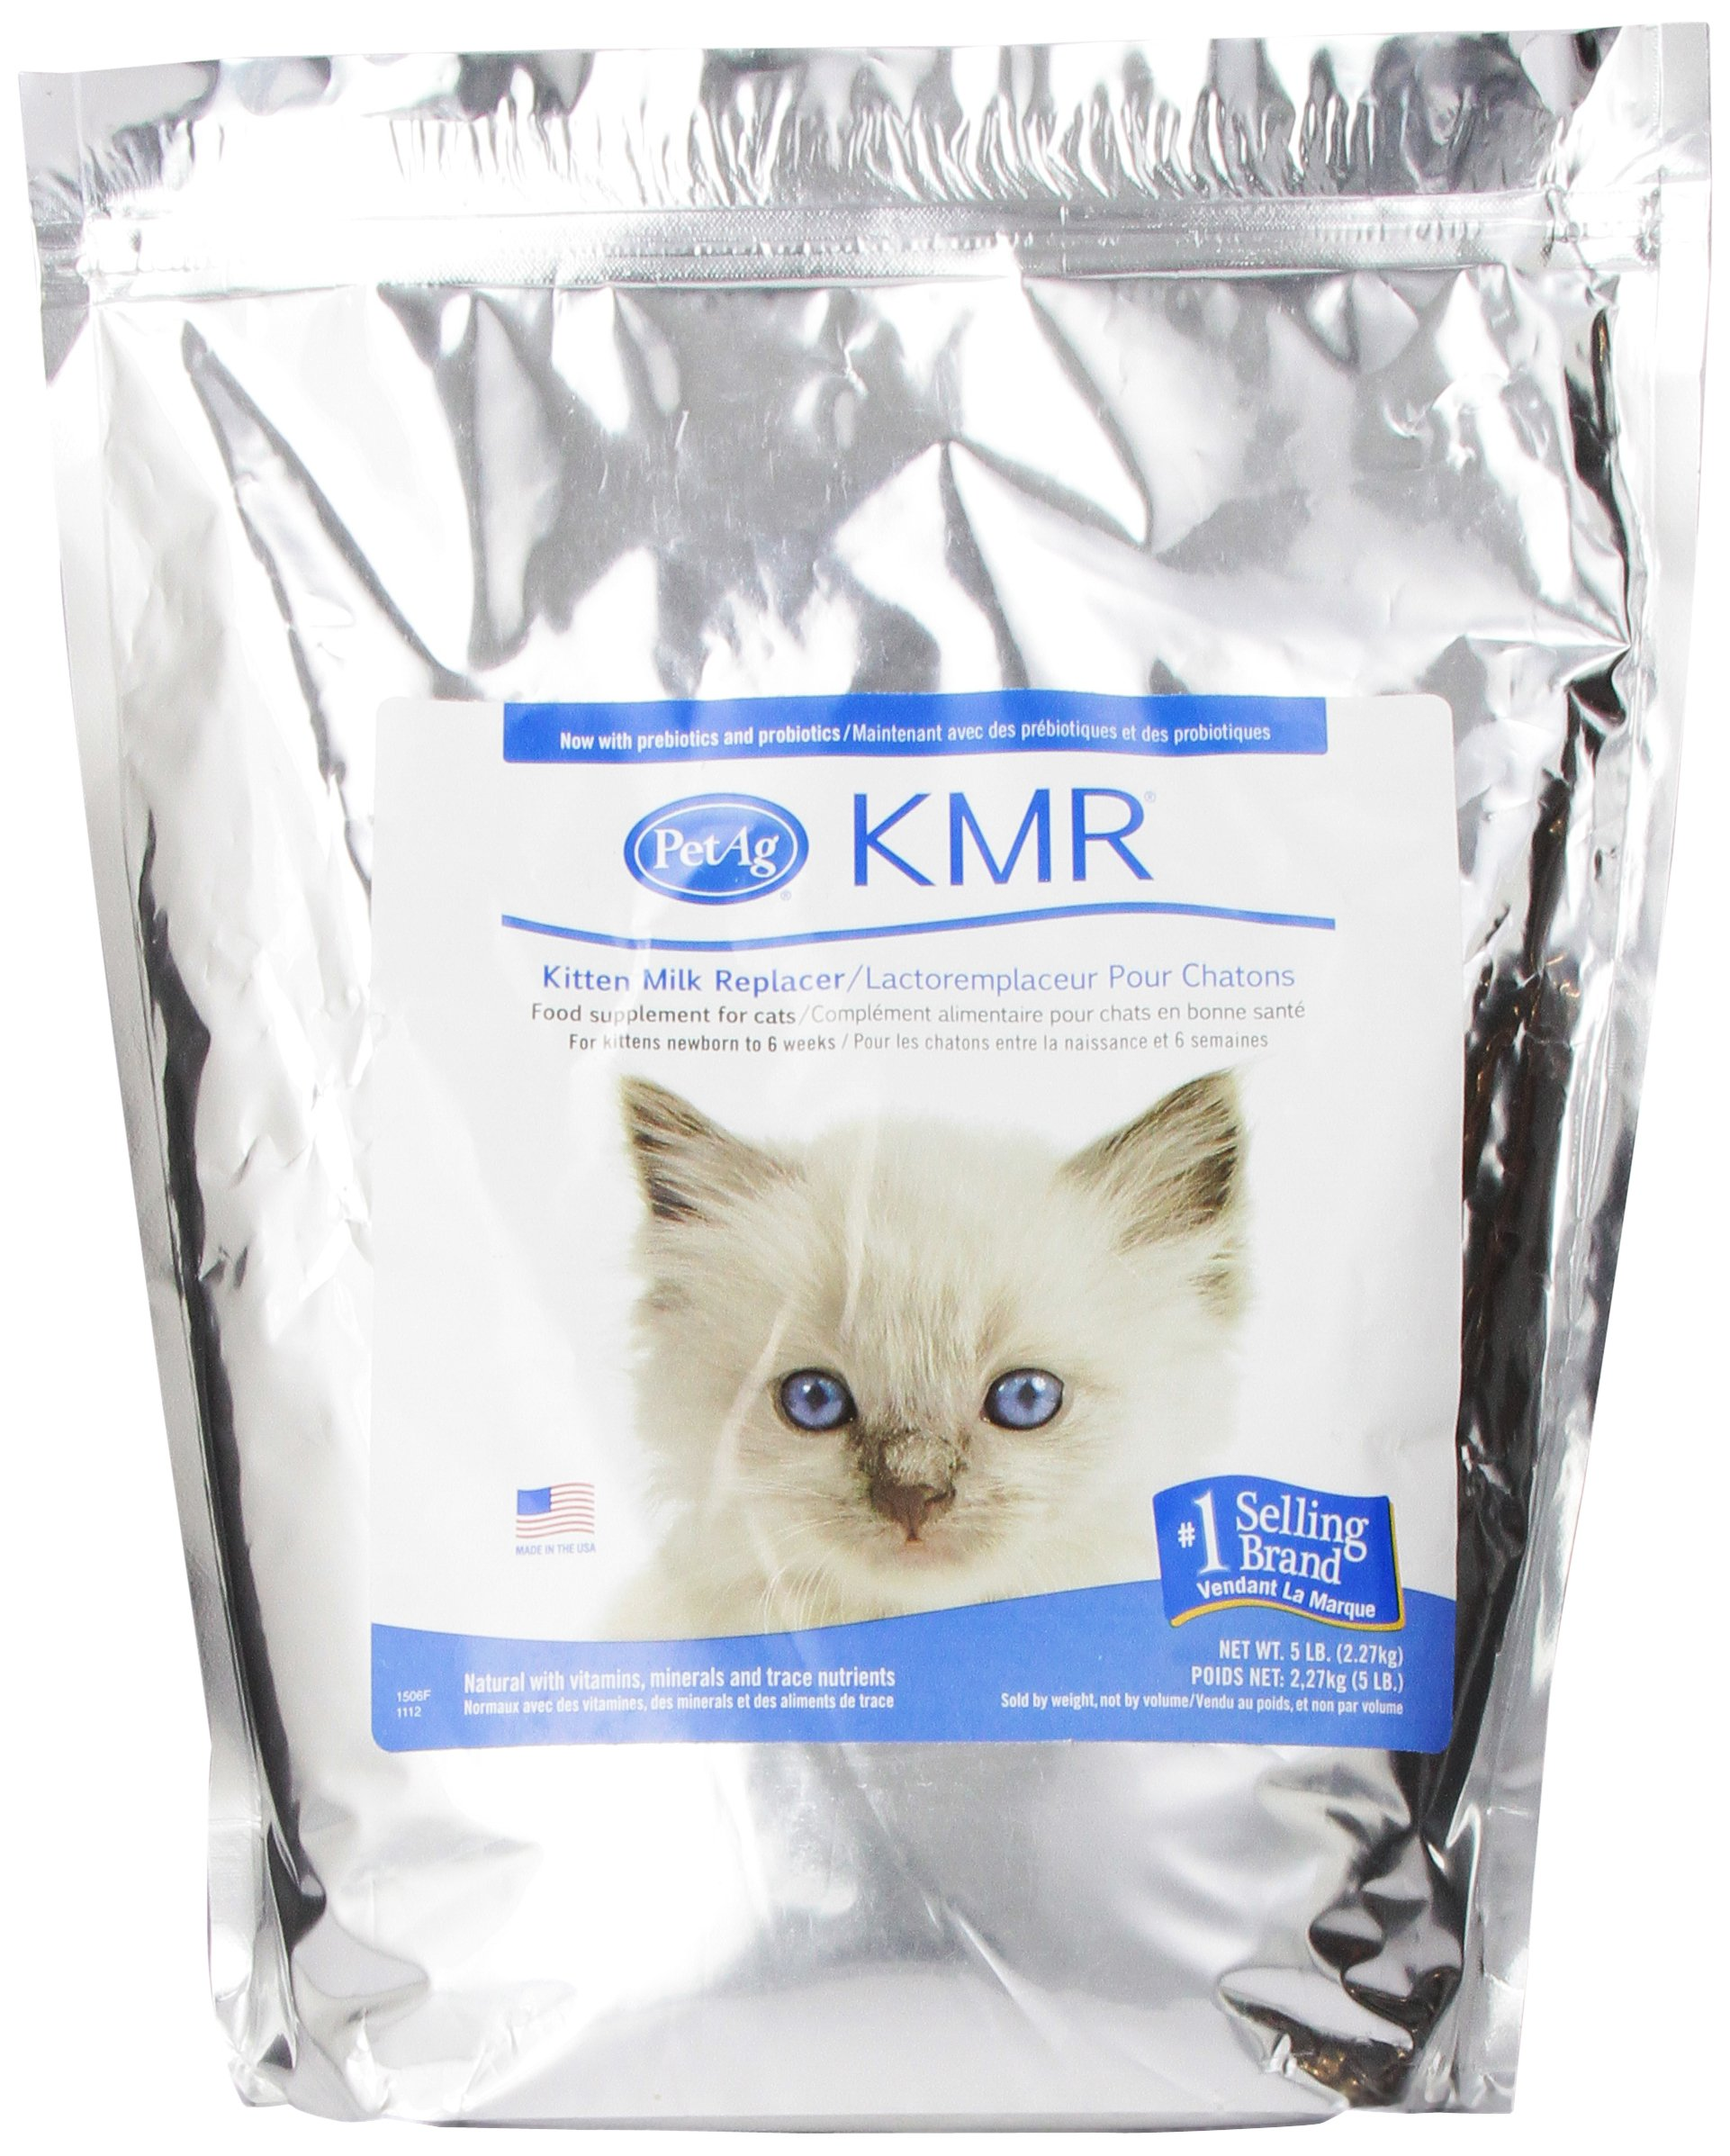 PetAg Kitten Milk Replacer (KMR) Powder Formula 5 Pounds by PetAg